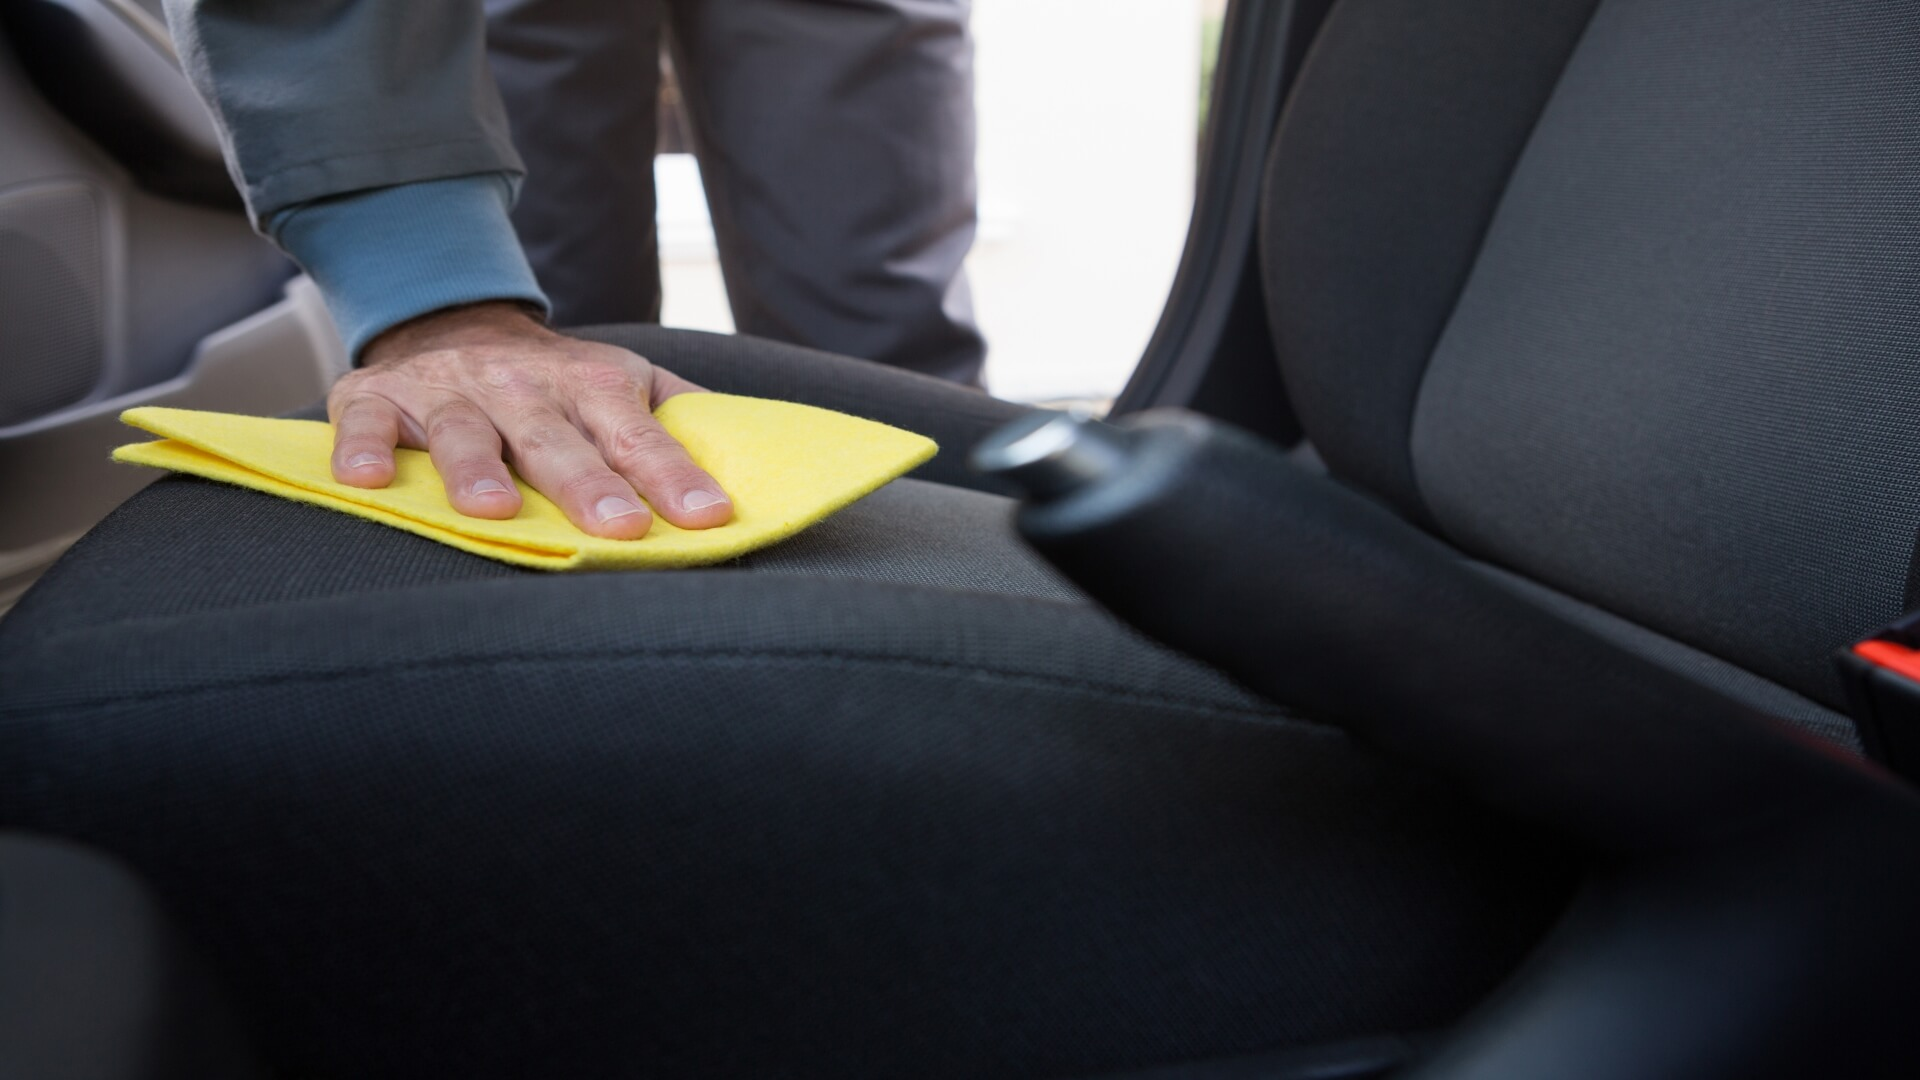 Car upholstery cleaned by a man. Cleaning car seats, cleaning vehicle upholstery.